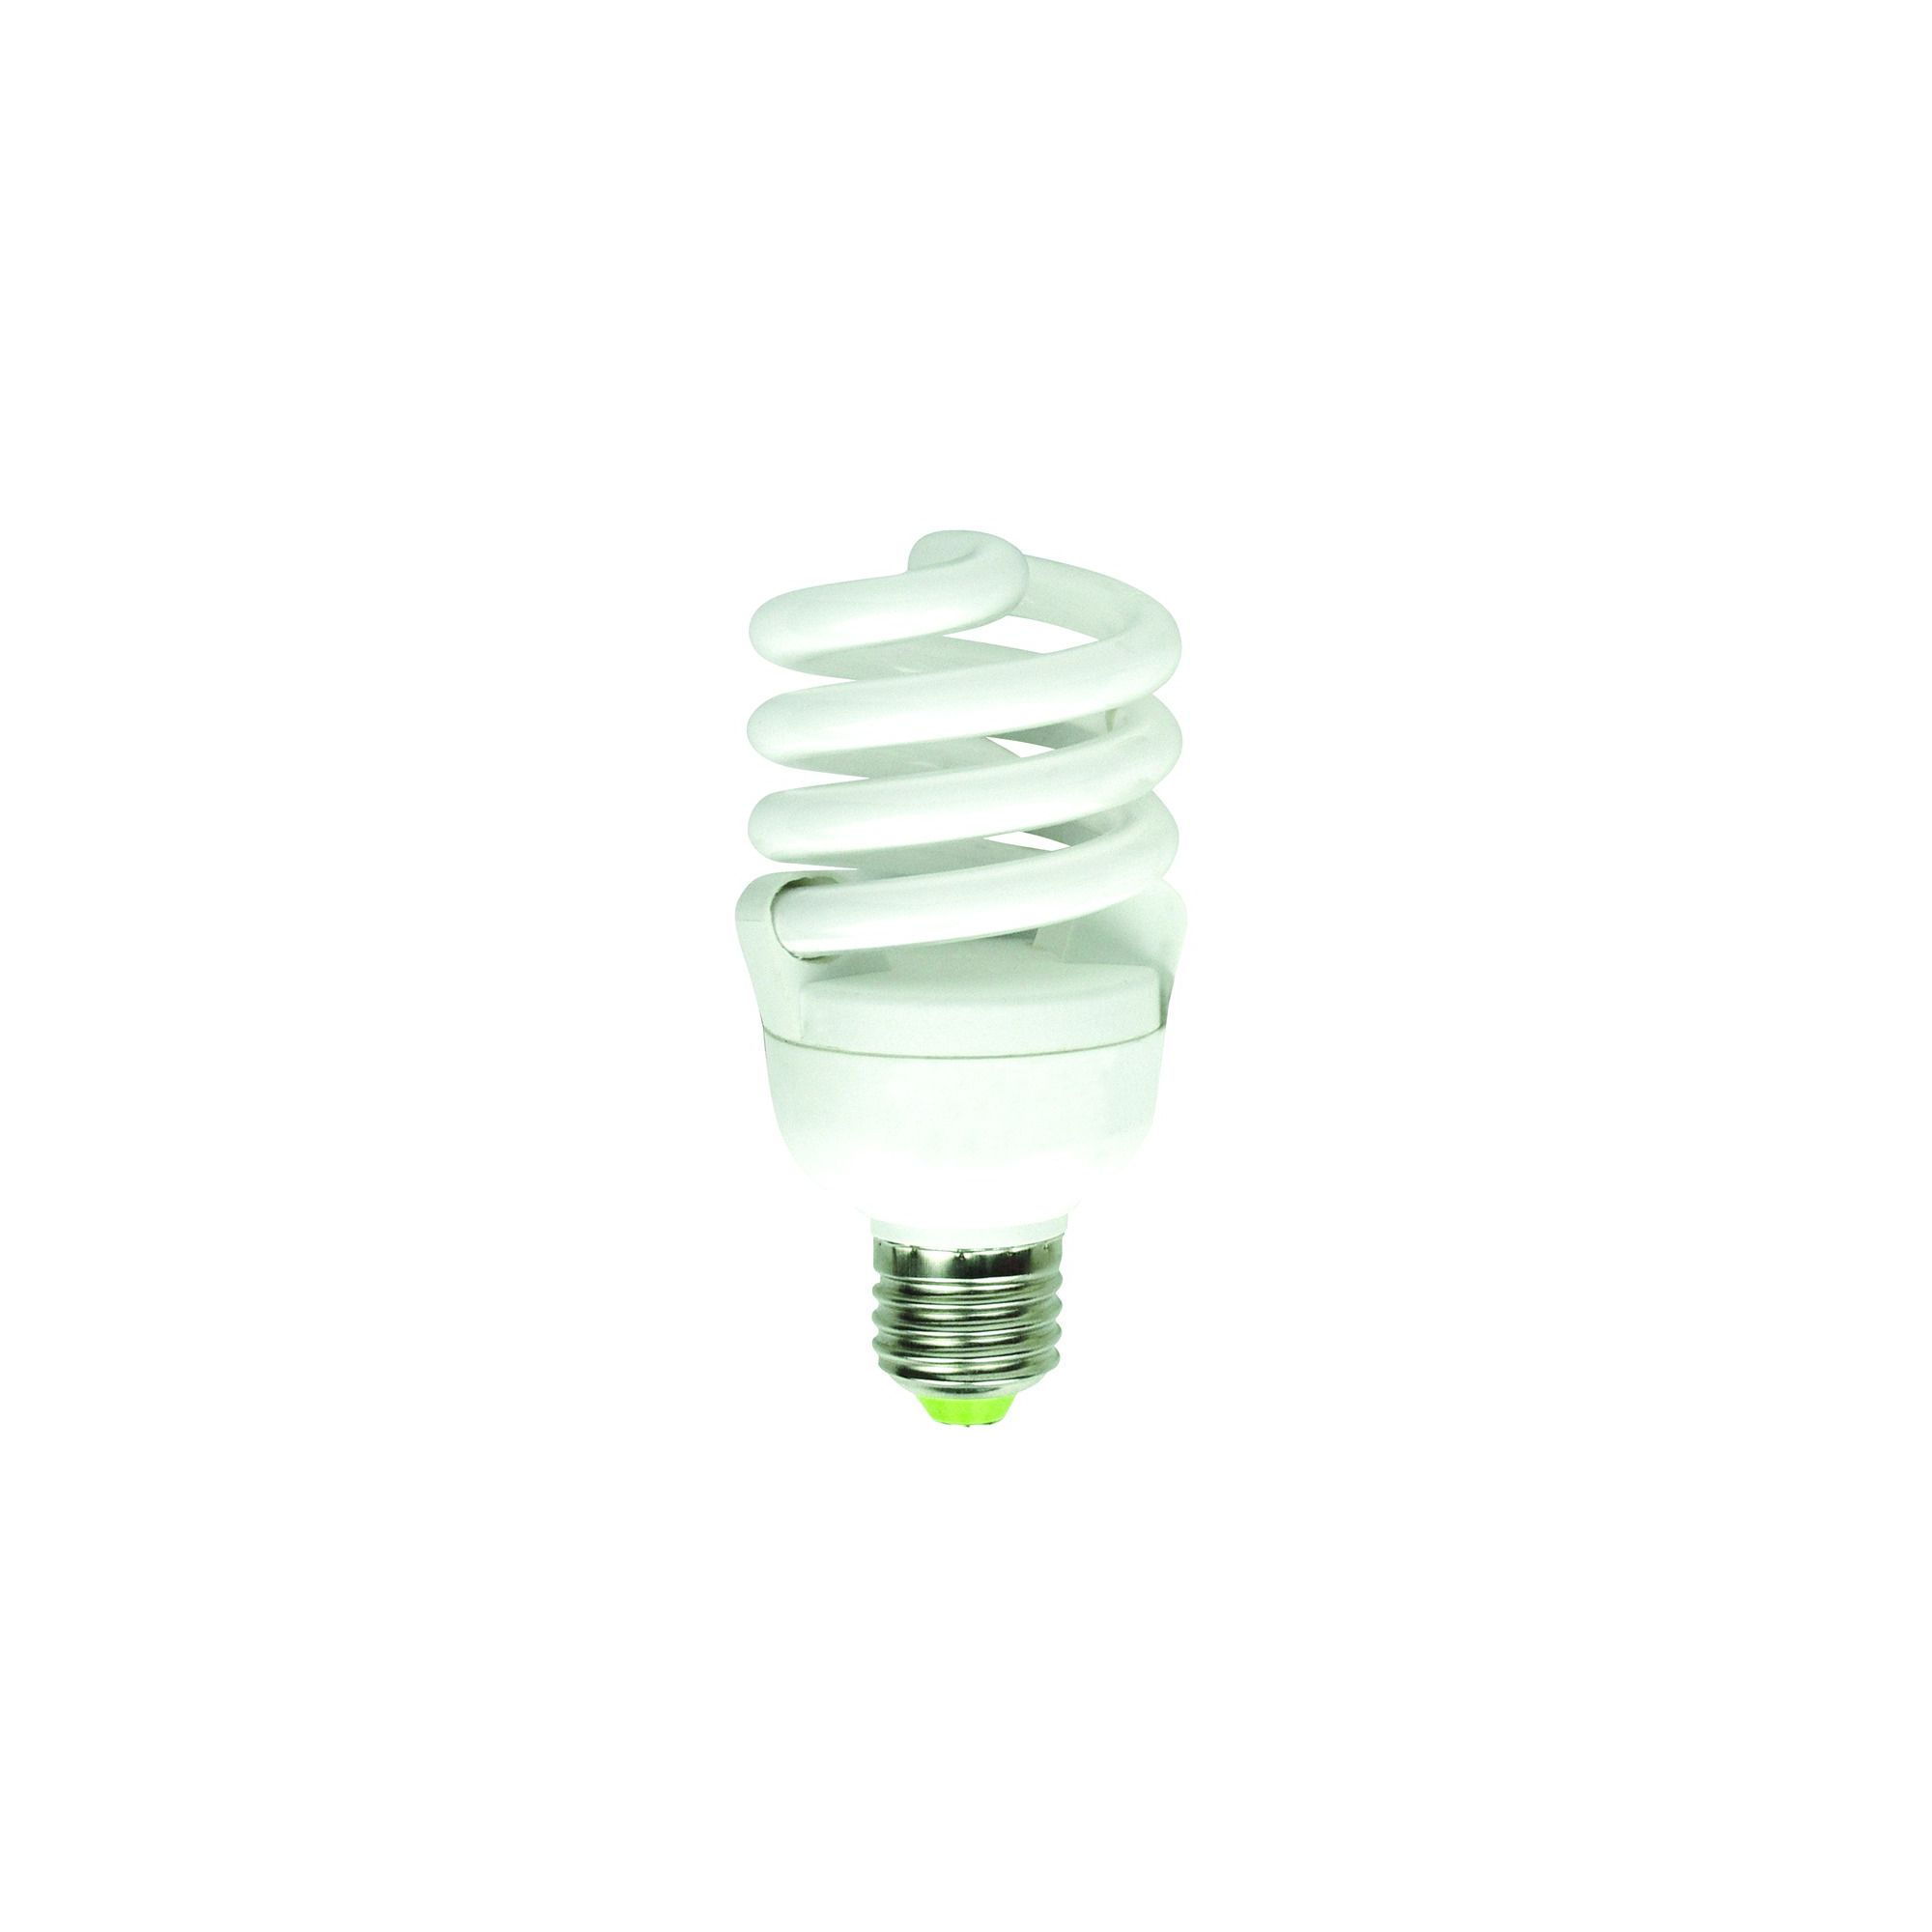 20w E27 Dimmable Low Energy Spiral White Light Bulb